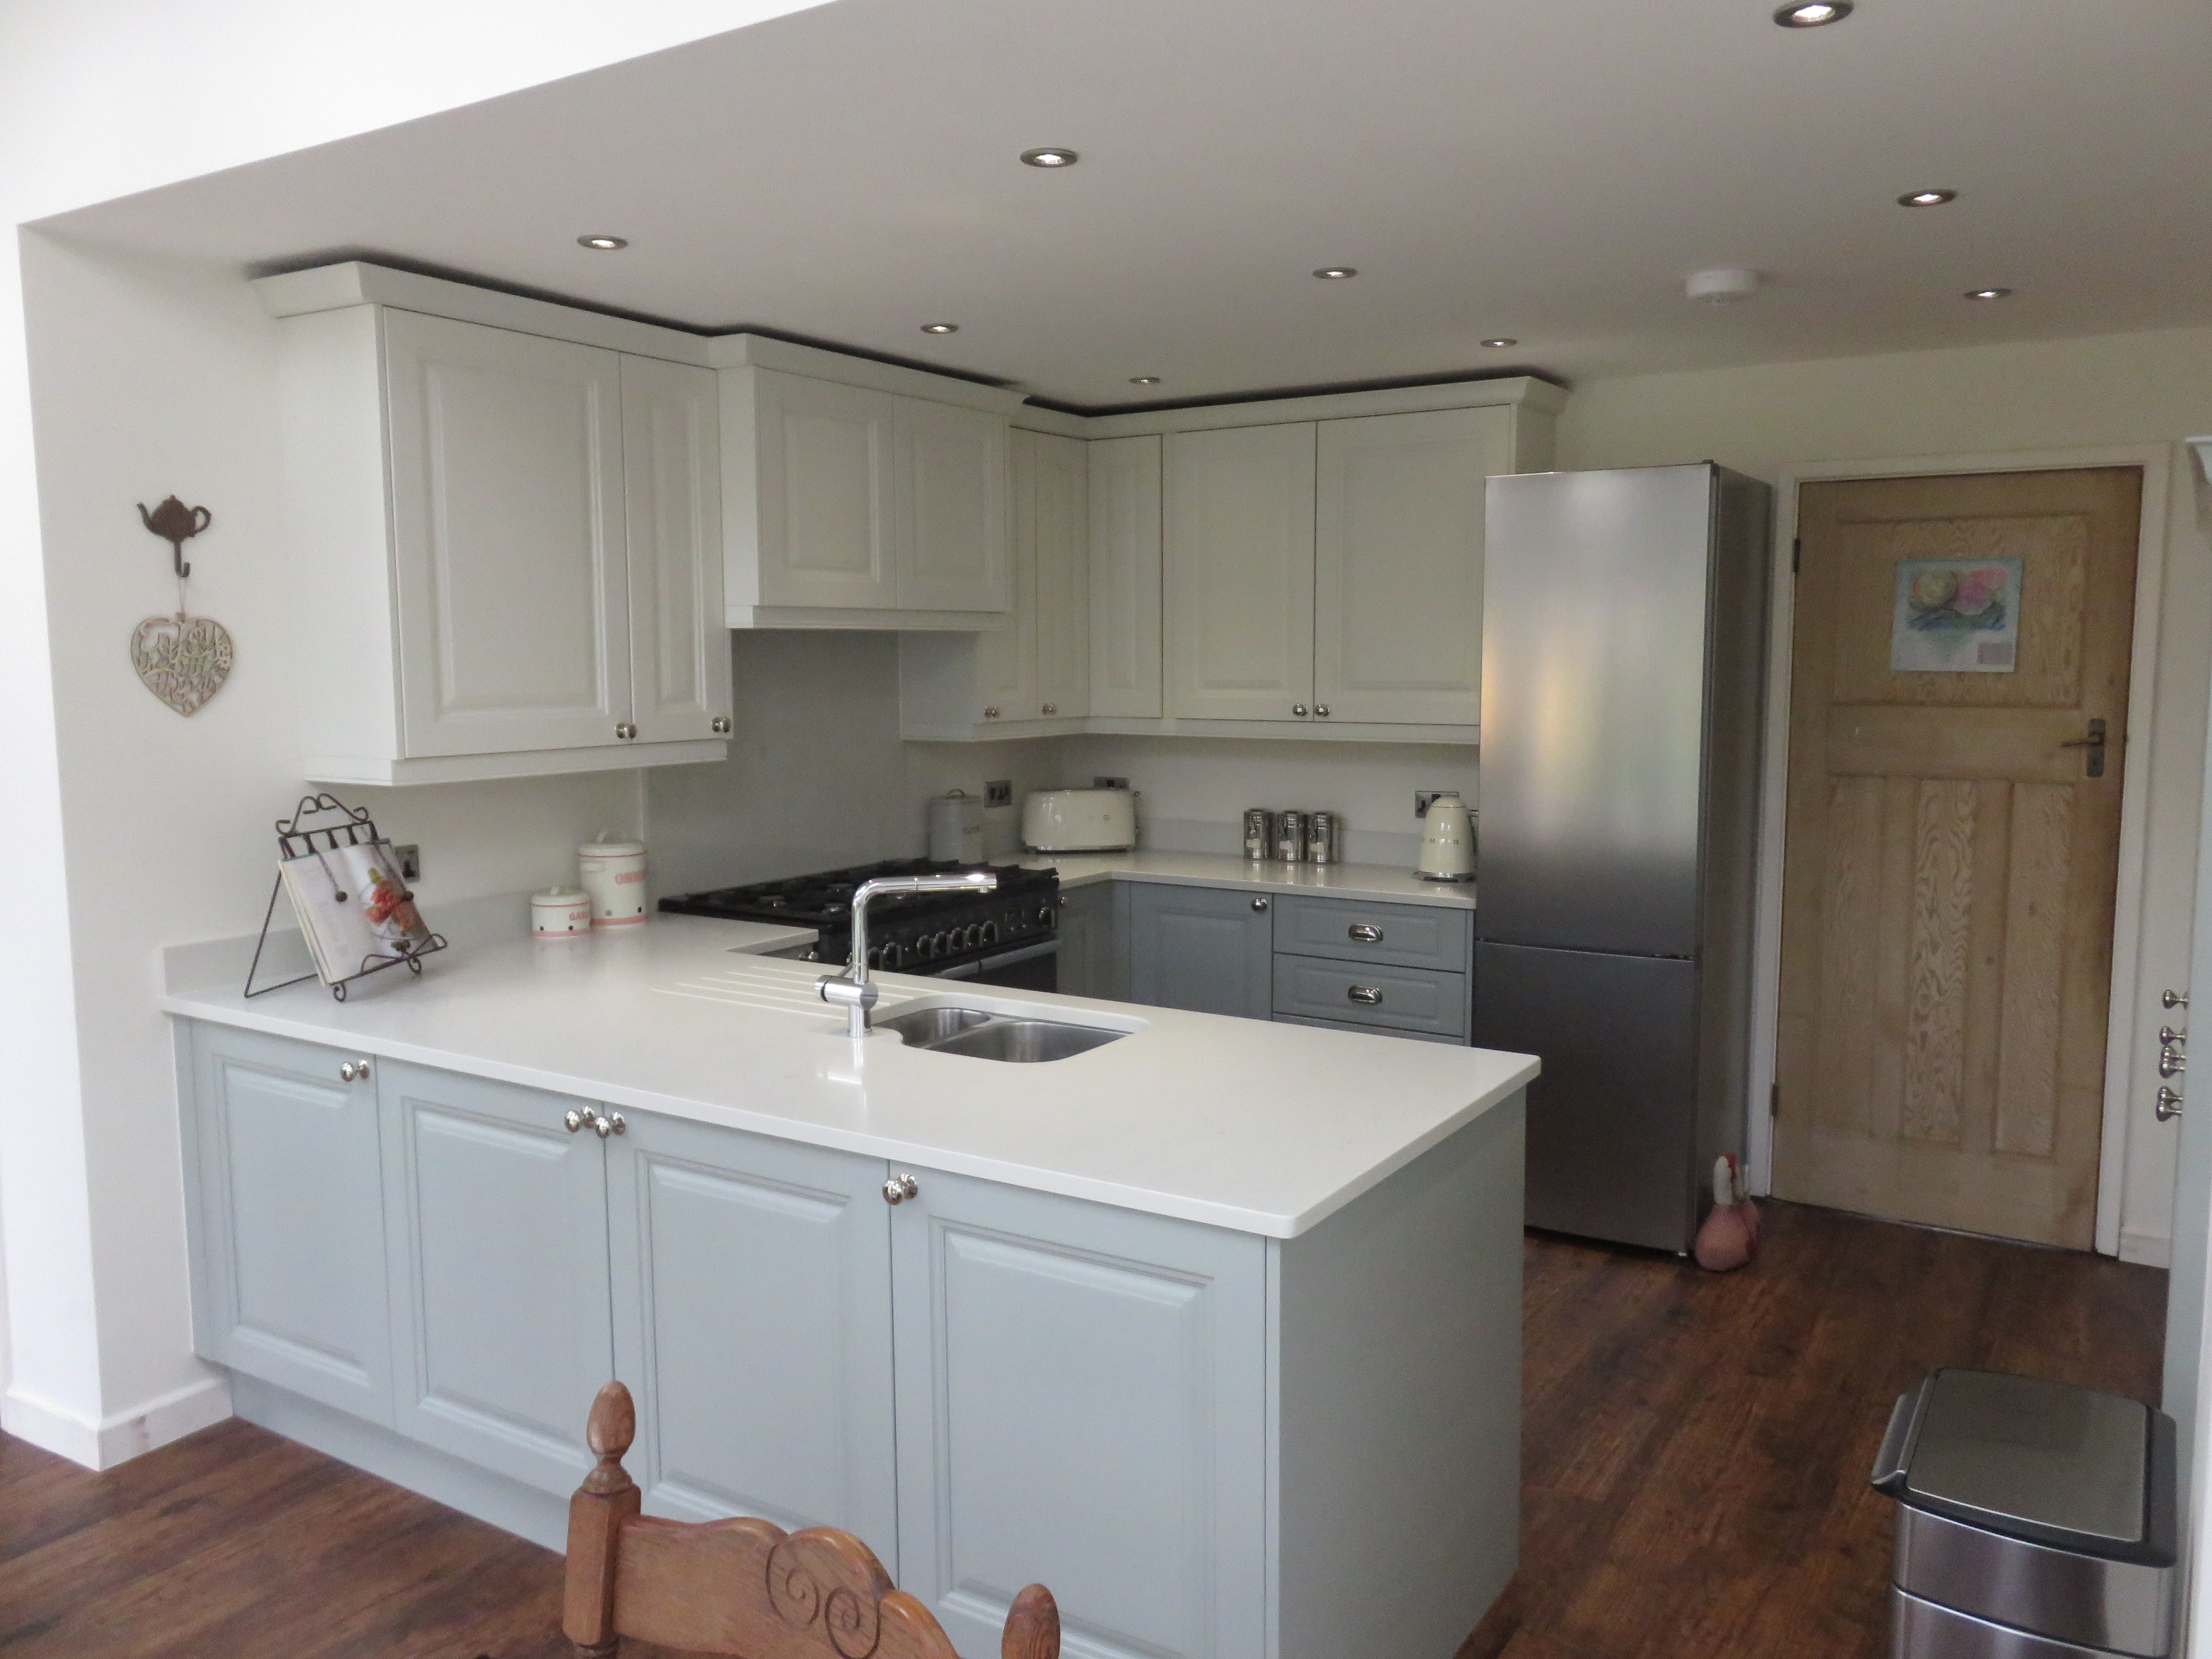 Light blue and porcelain fitted kitchen Kitchen fittings